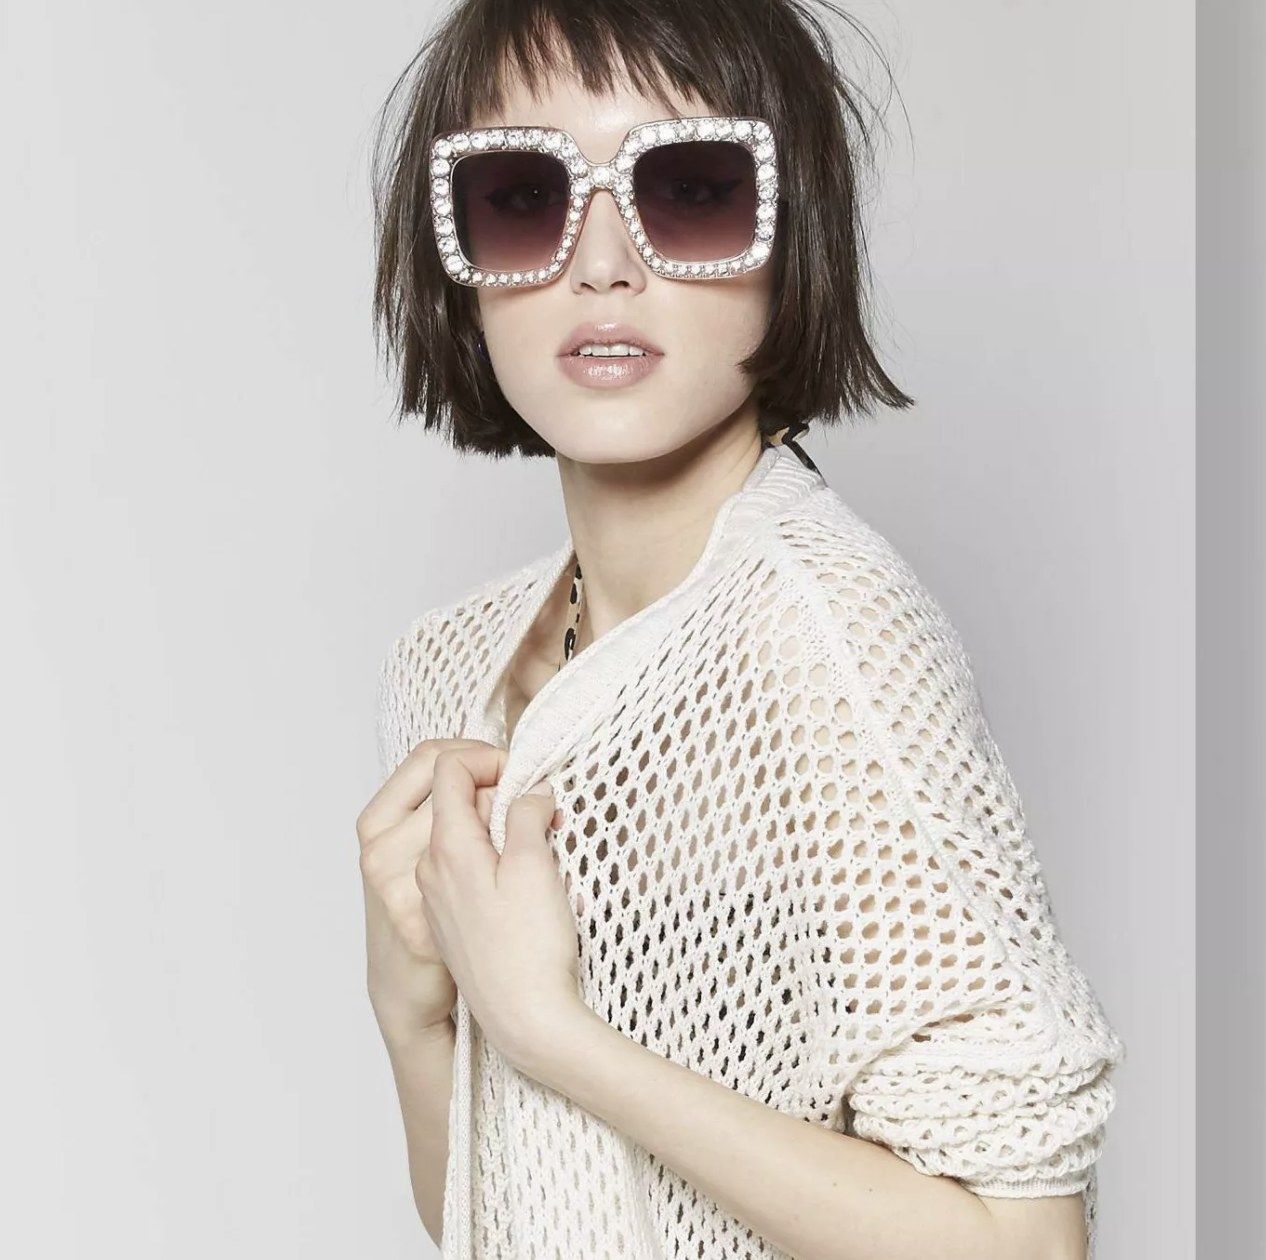 Model wearing square glasses with rhinestone accents